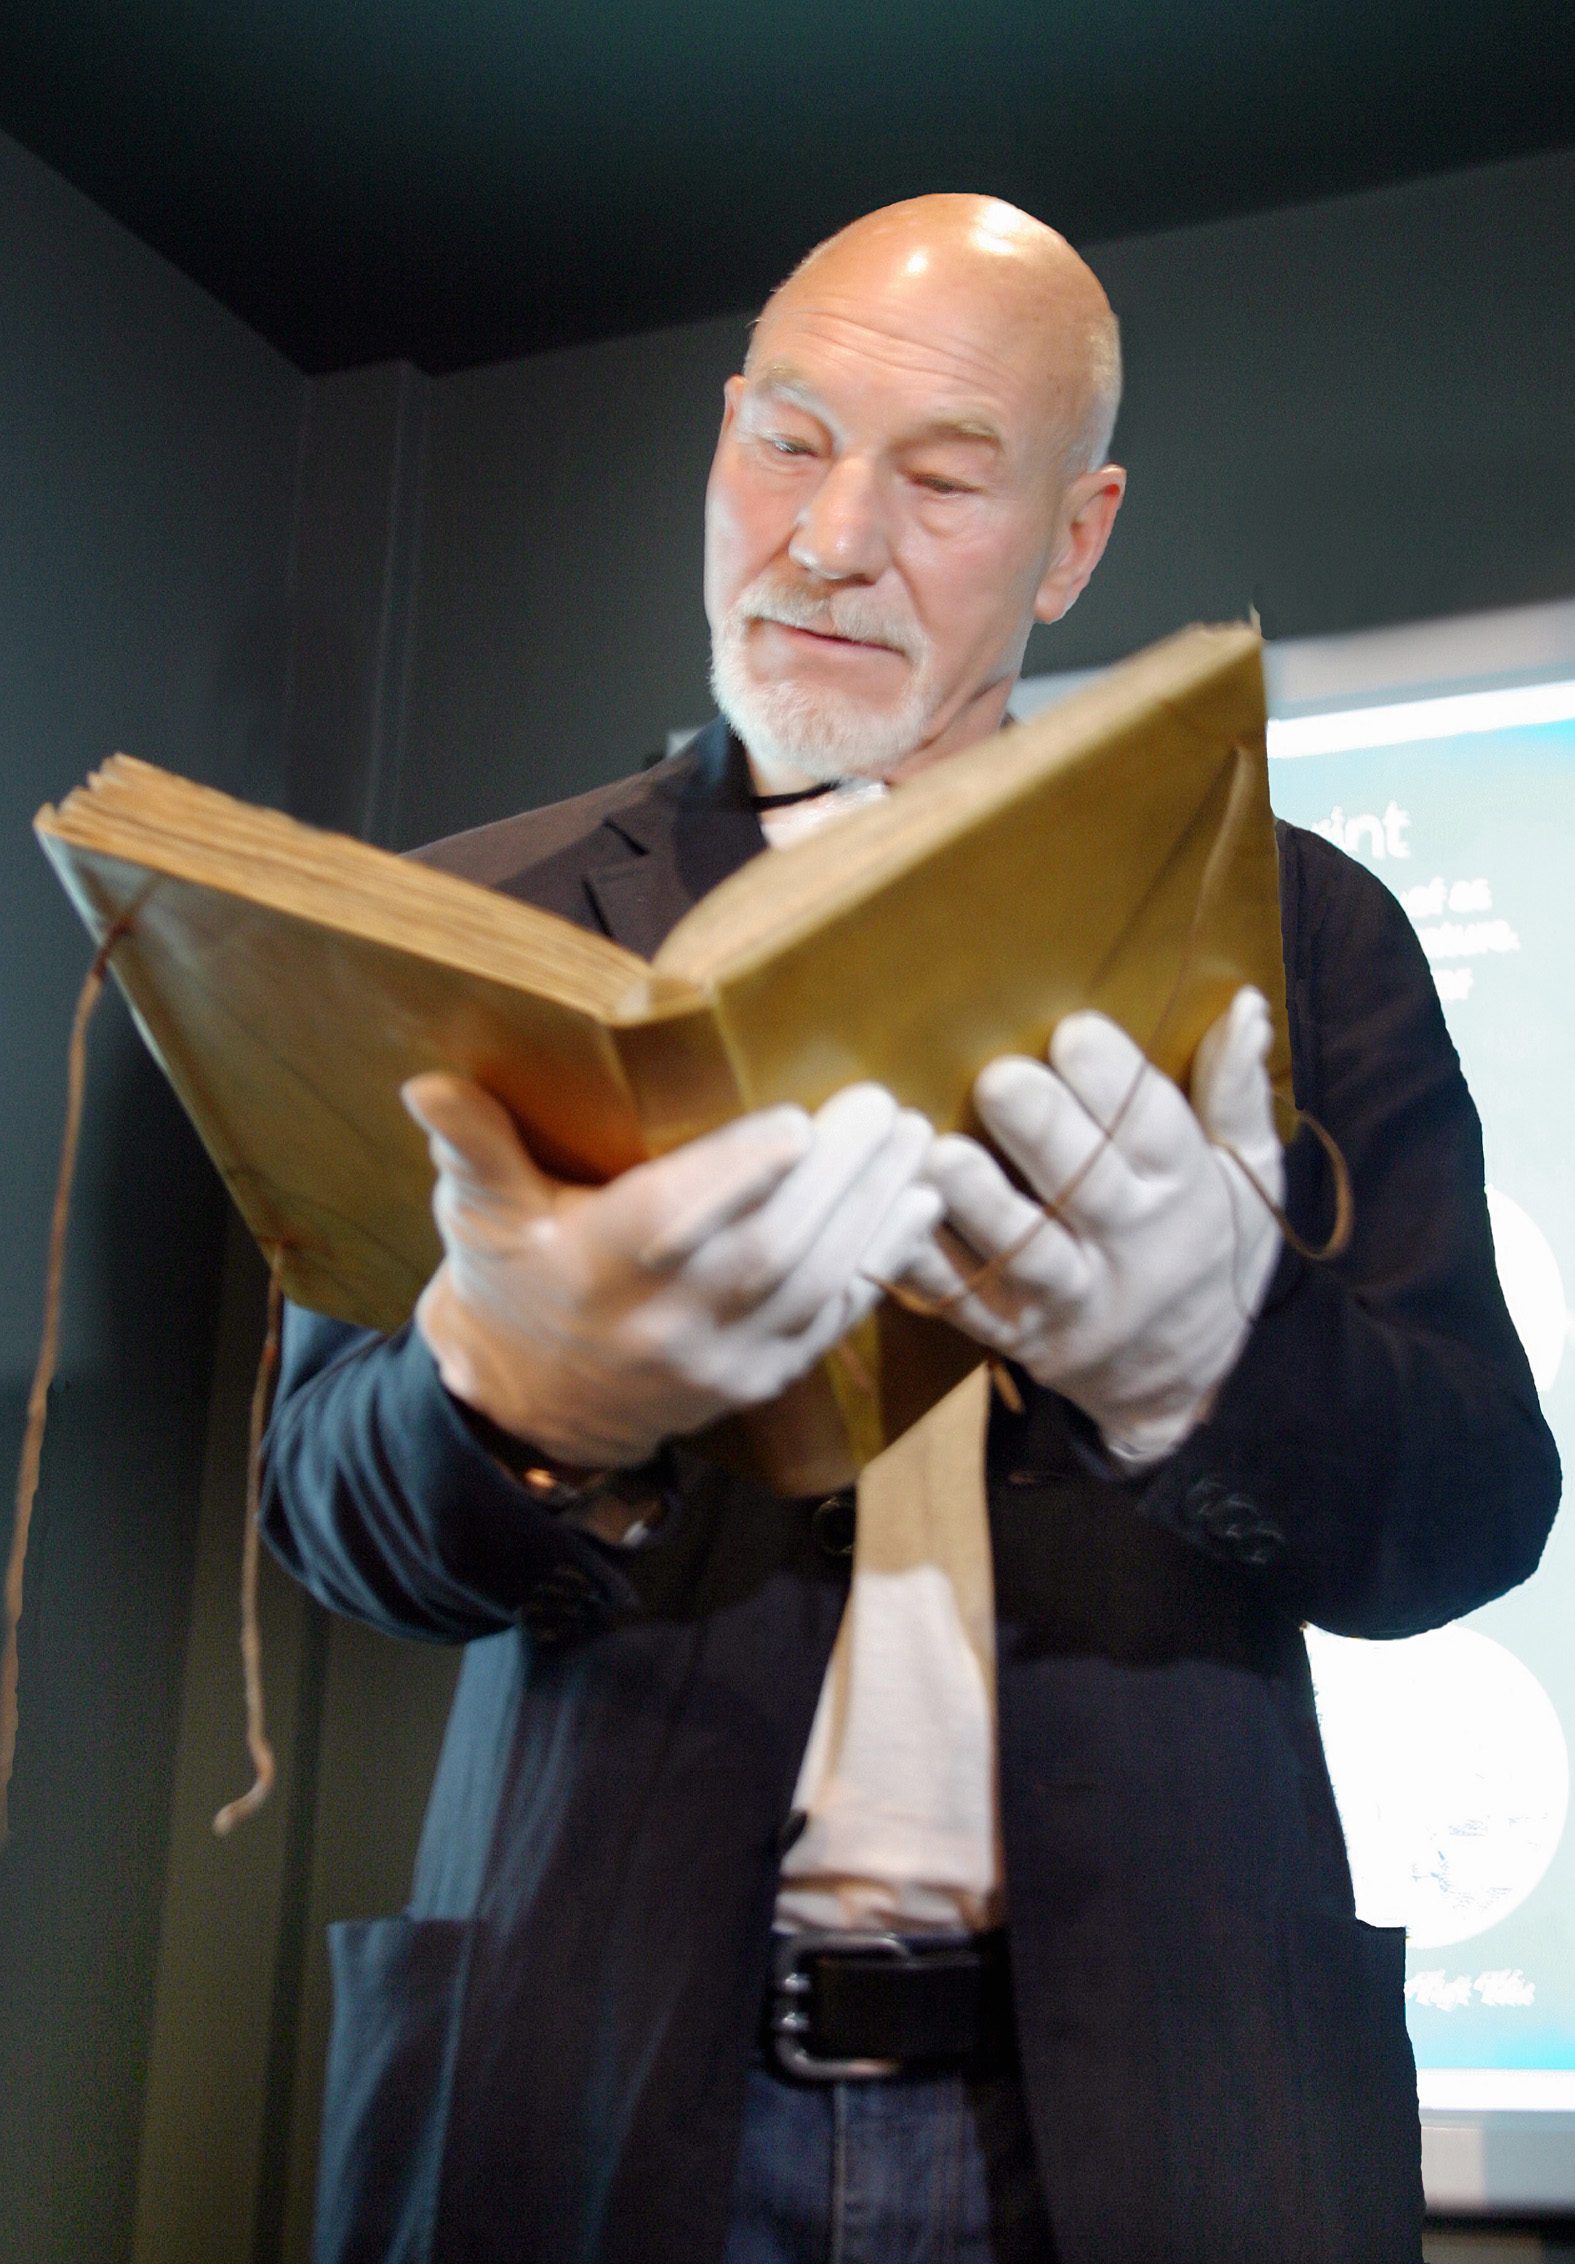 Actor Sir Patrick Stewart studies the Shakespeare First Folio which was gifted to Skipton